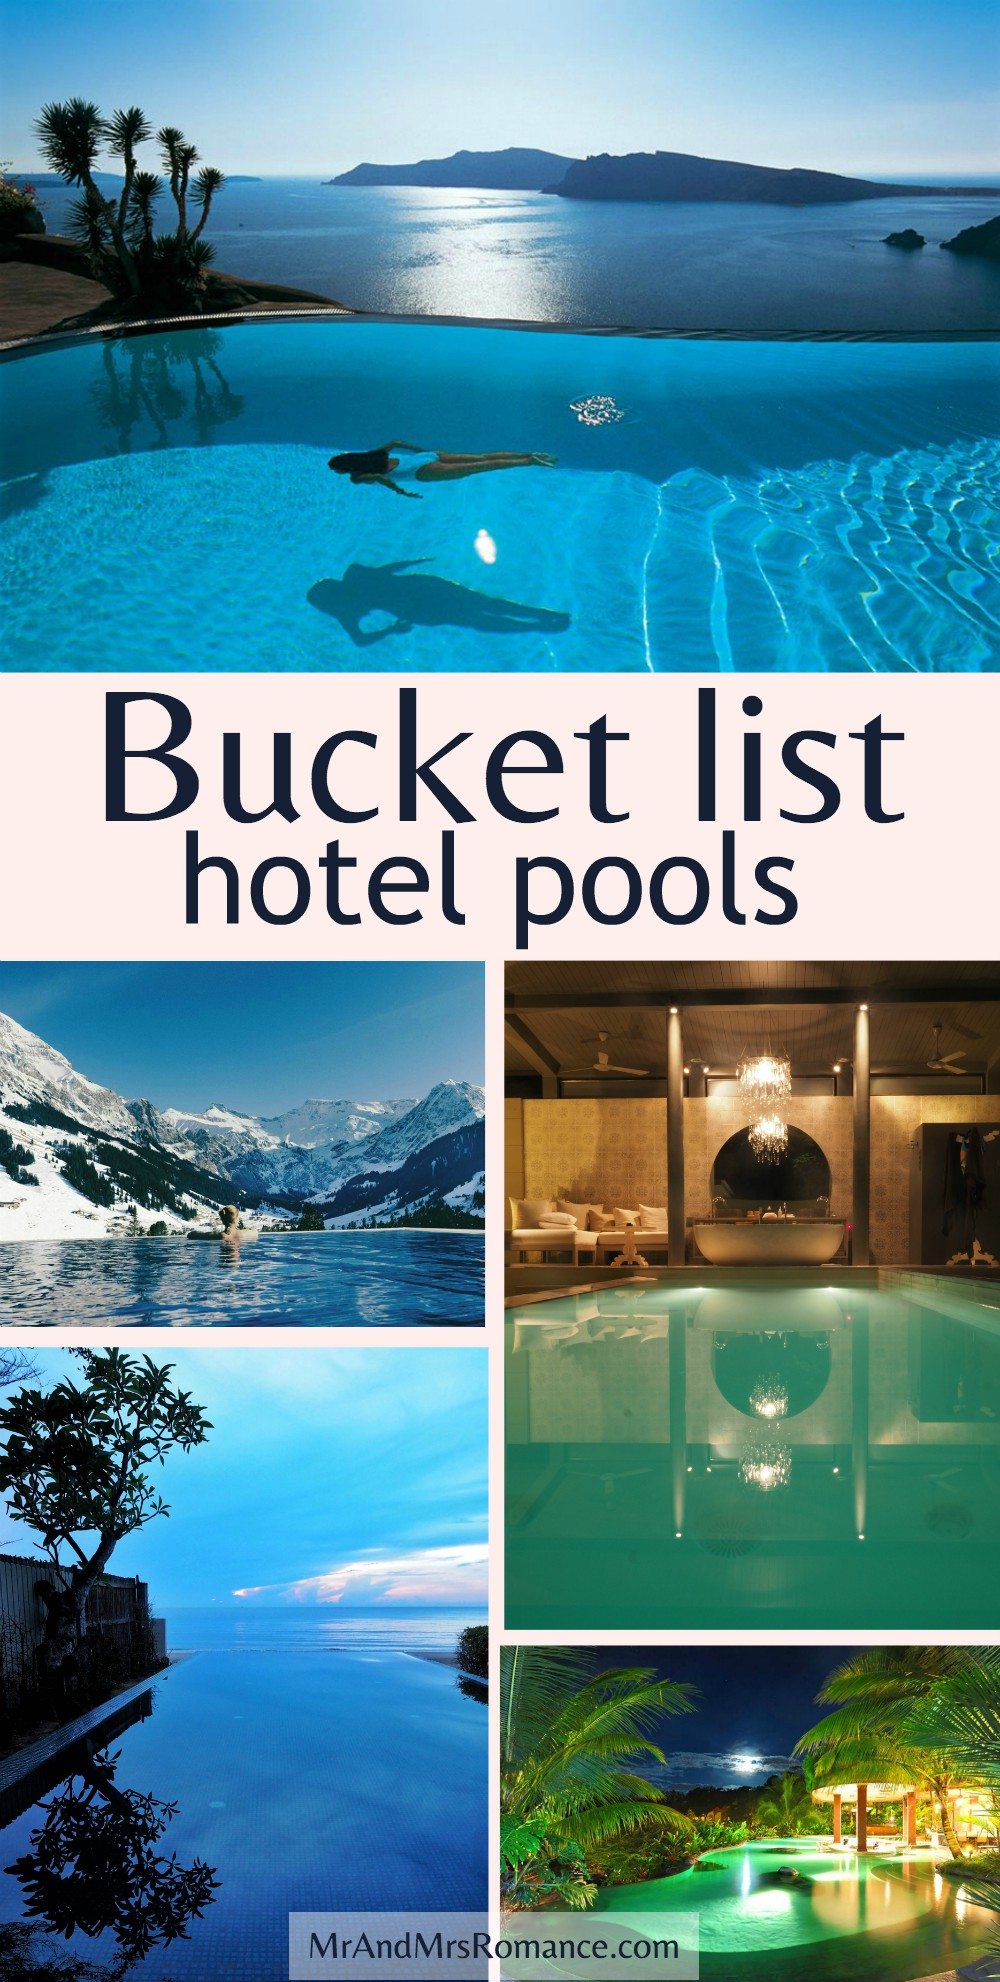 Bucket list hotel pools from around the world - Mr & Mrs Romance